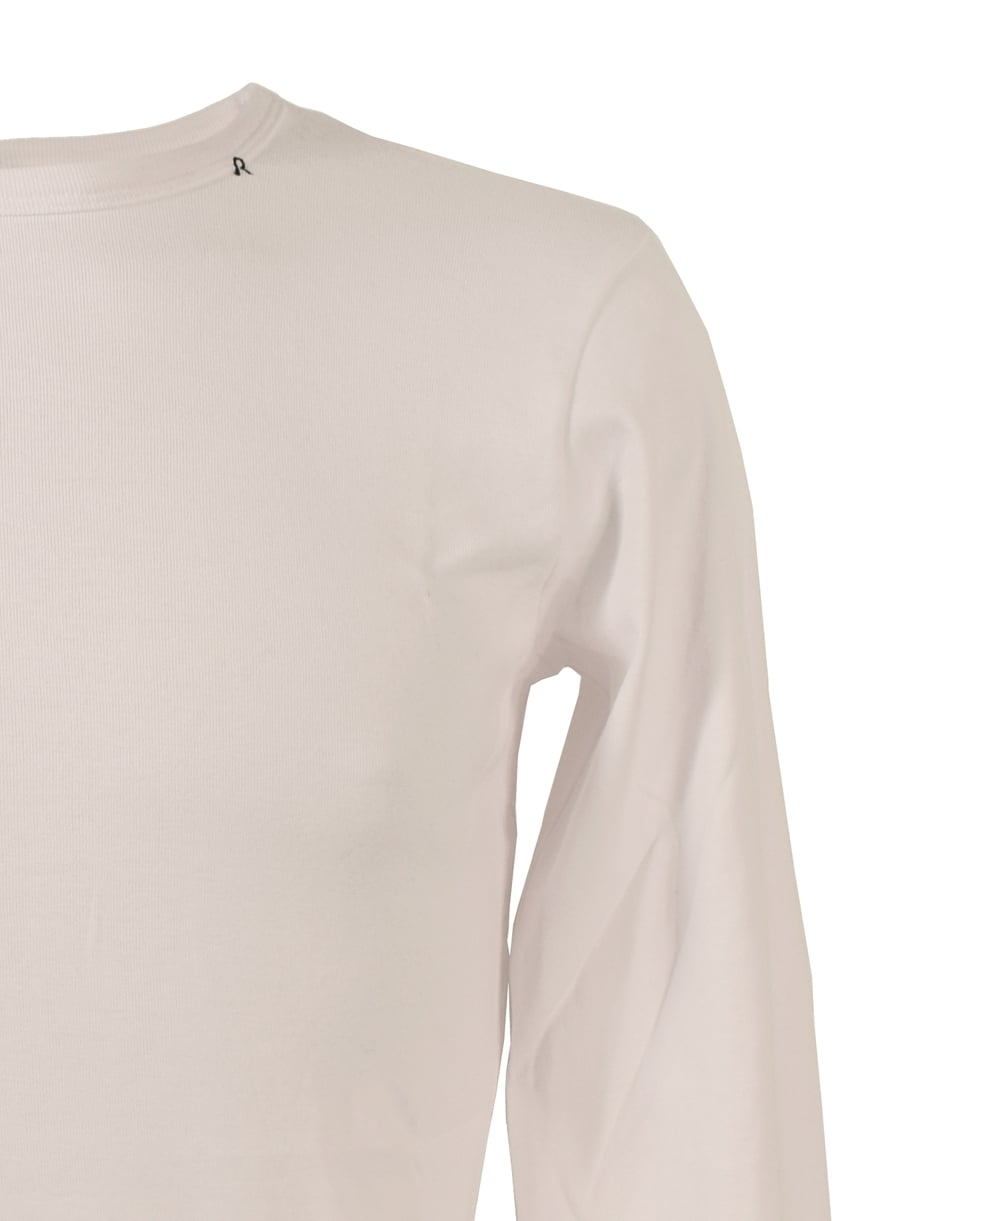 Replay white crew neck t shirt replay from jonathan for Crew neck white t shirt